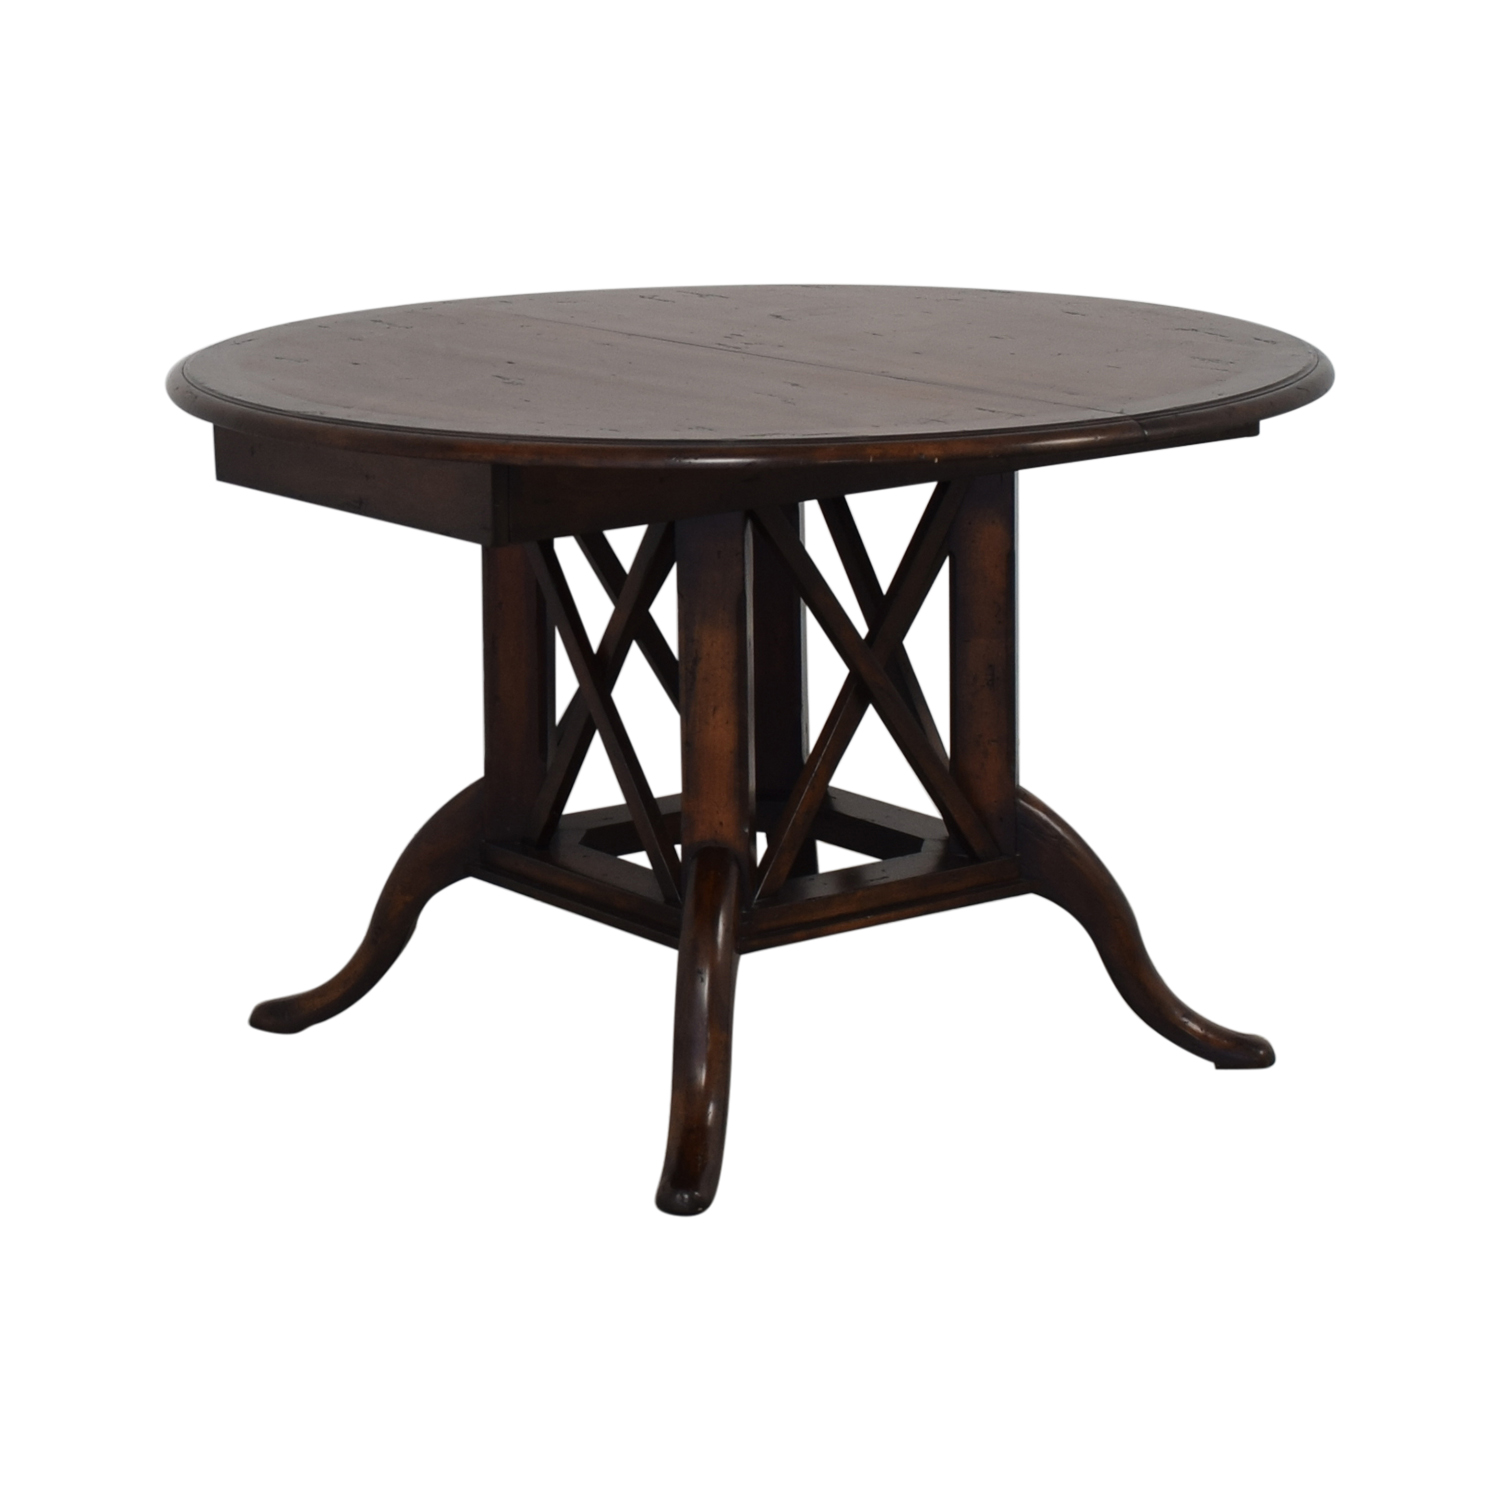 Henredon Furniture Henredon Mahogany Extension Dining Room Table for sale